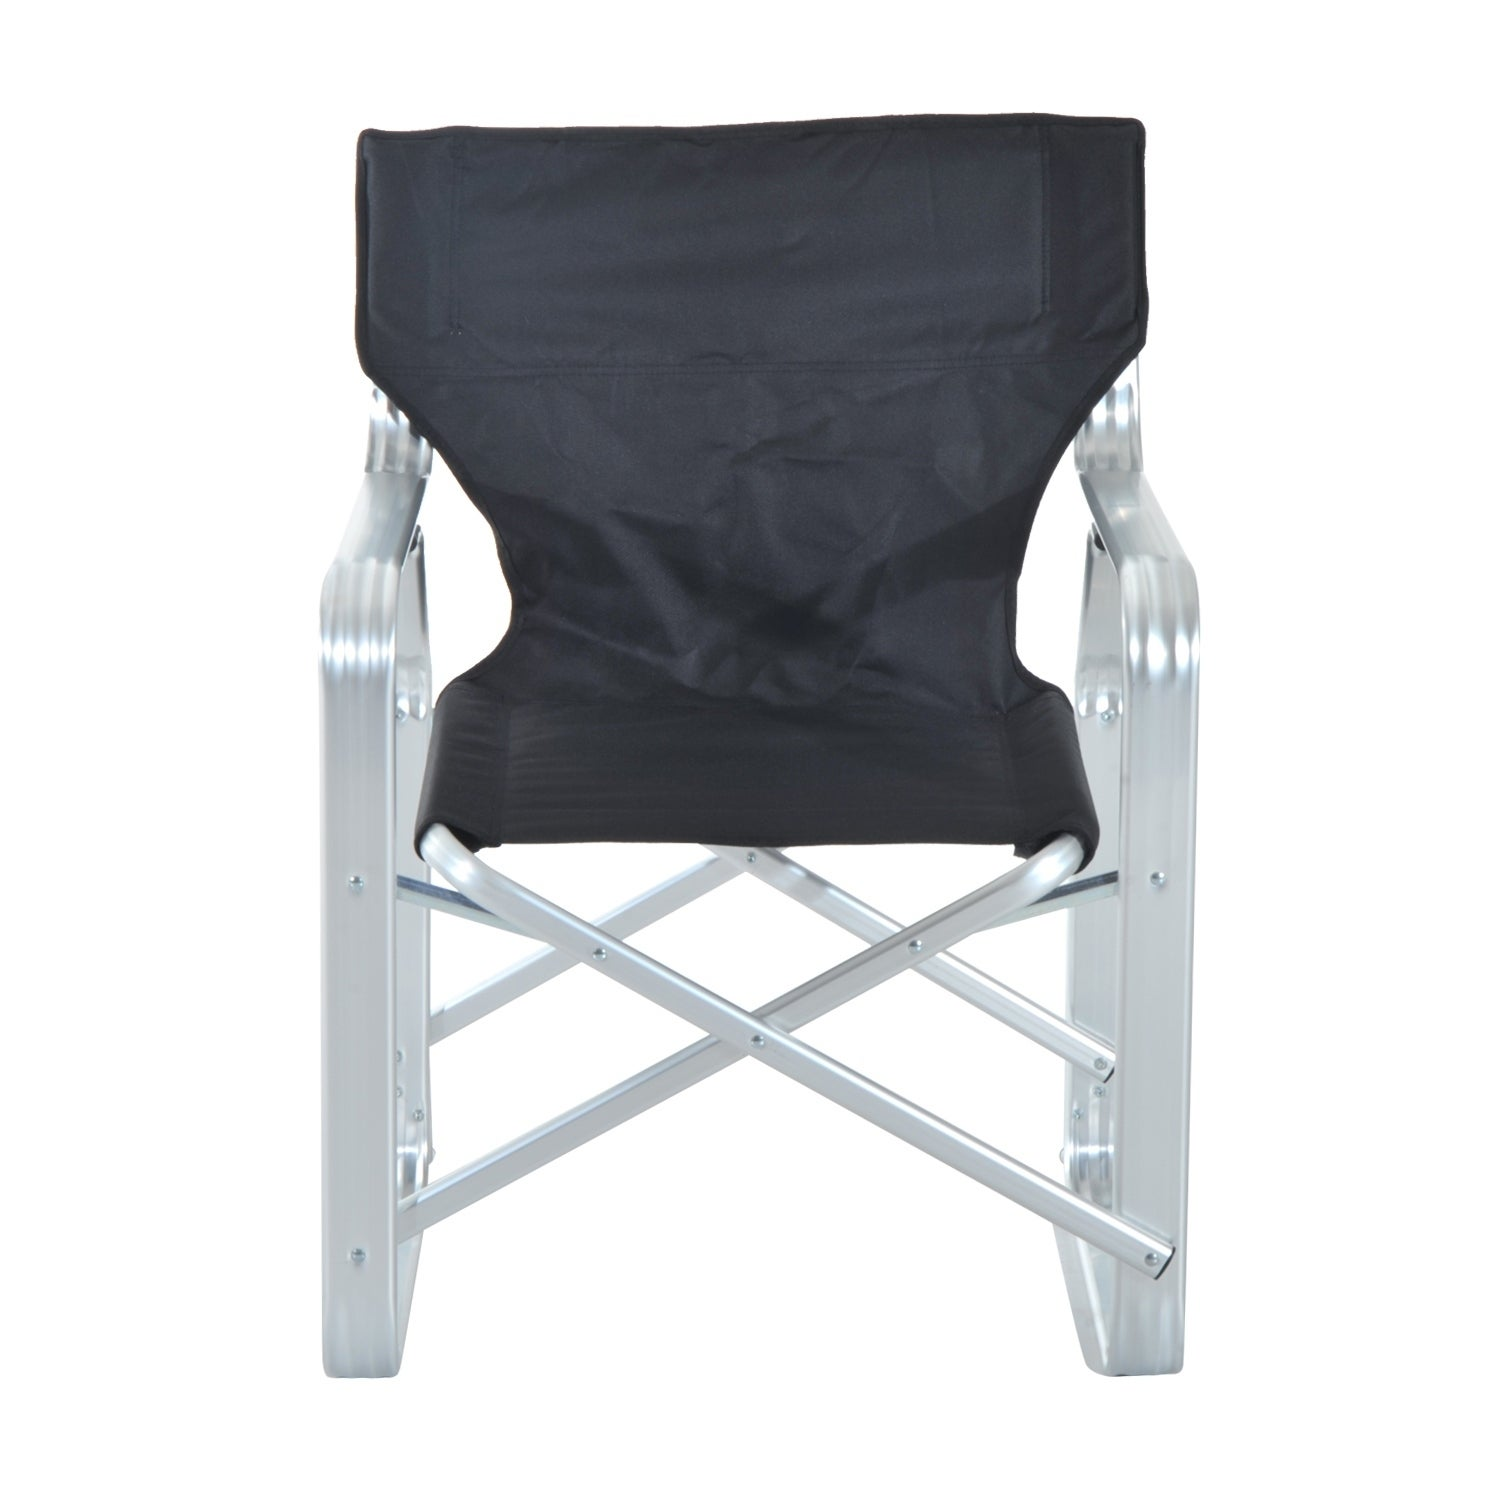 Outsunny Heavy Duty Folding Director & Camping Chair Free